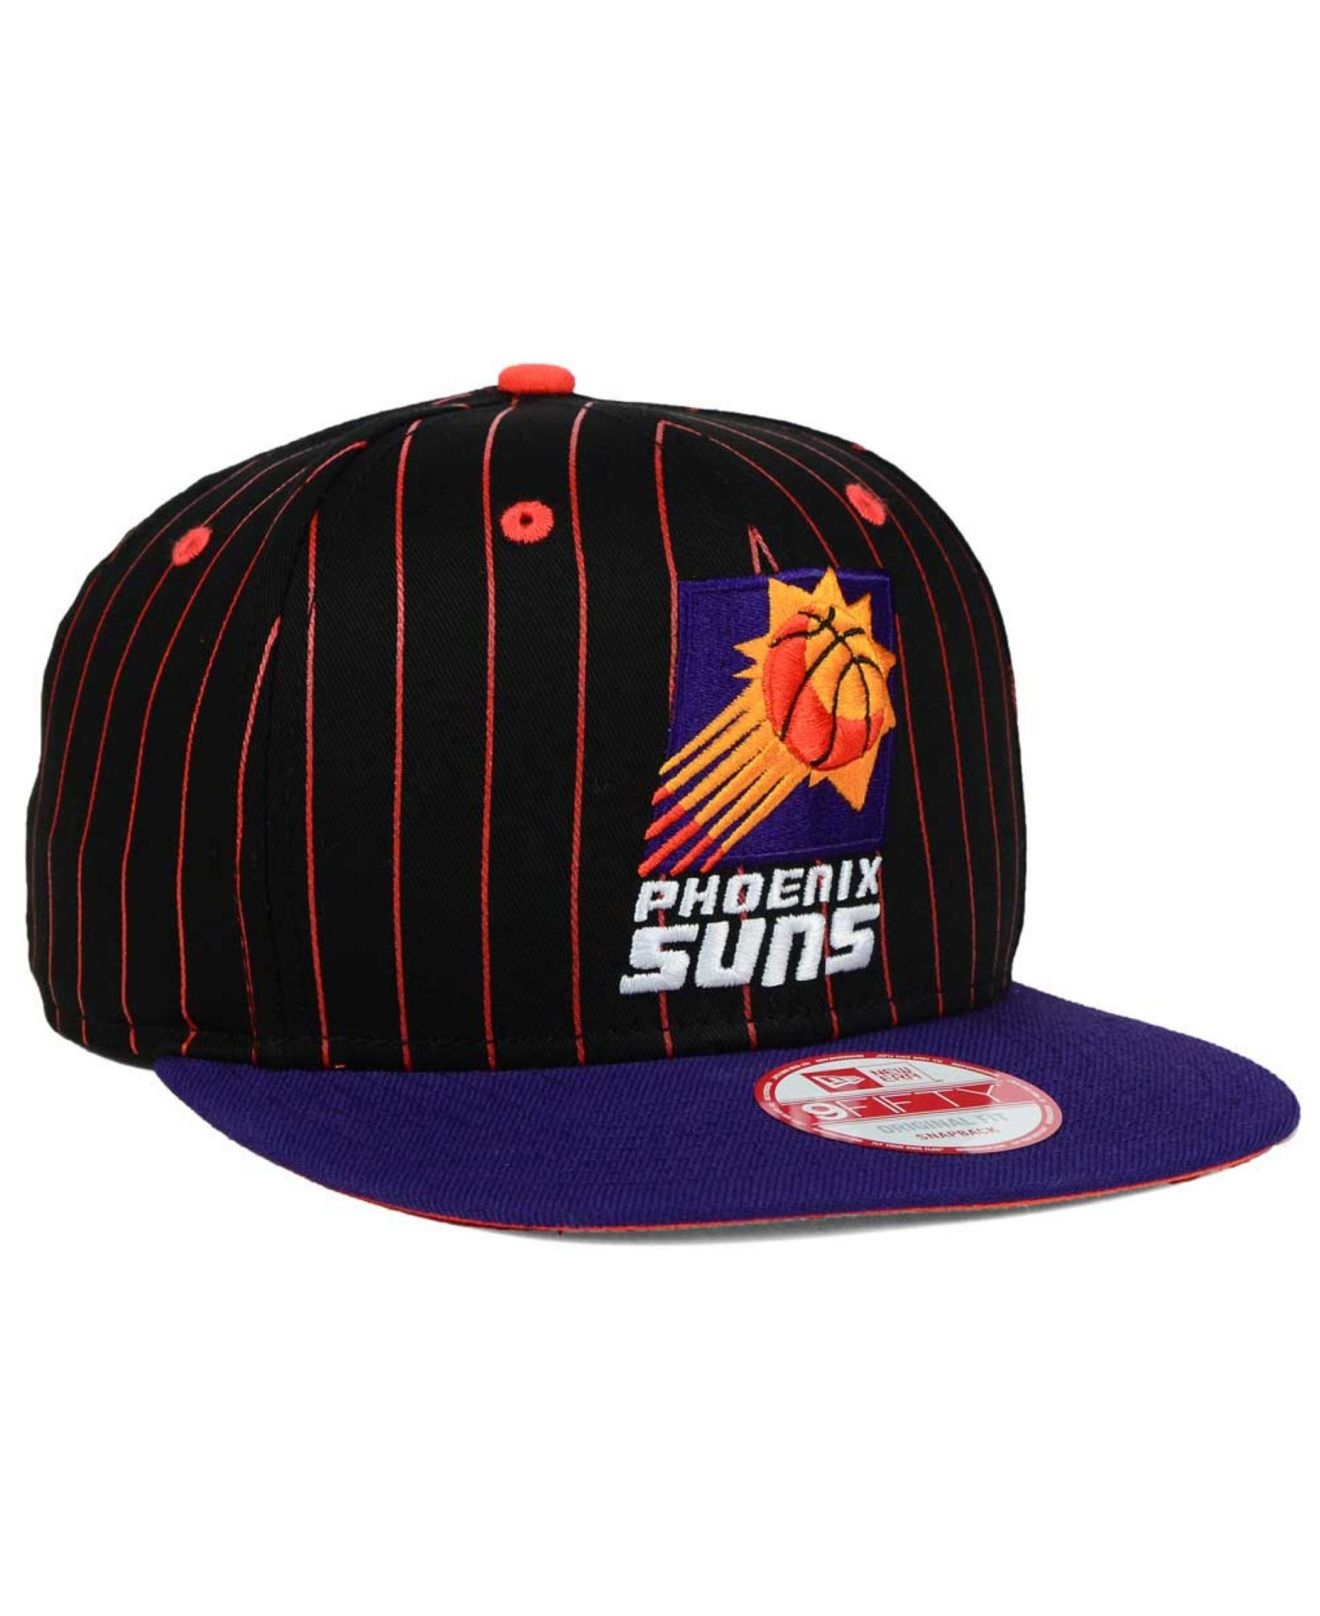 more photos 55f30 e9843 KTZ Phoenix Suns Vintage Pinstripe 9fifty Snapback Cap in Black for ...